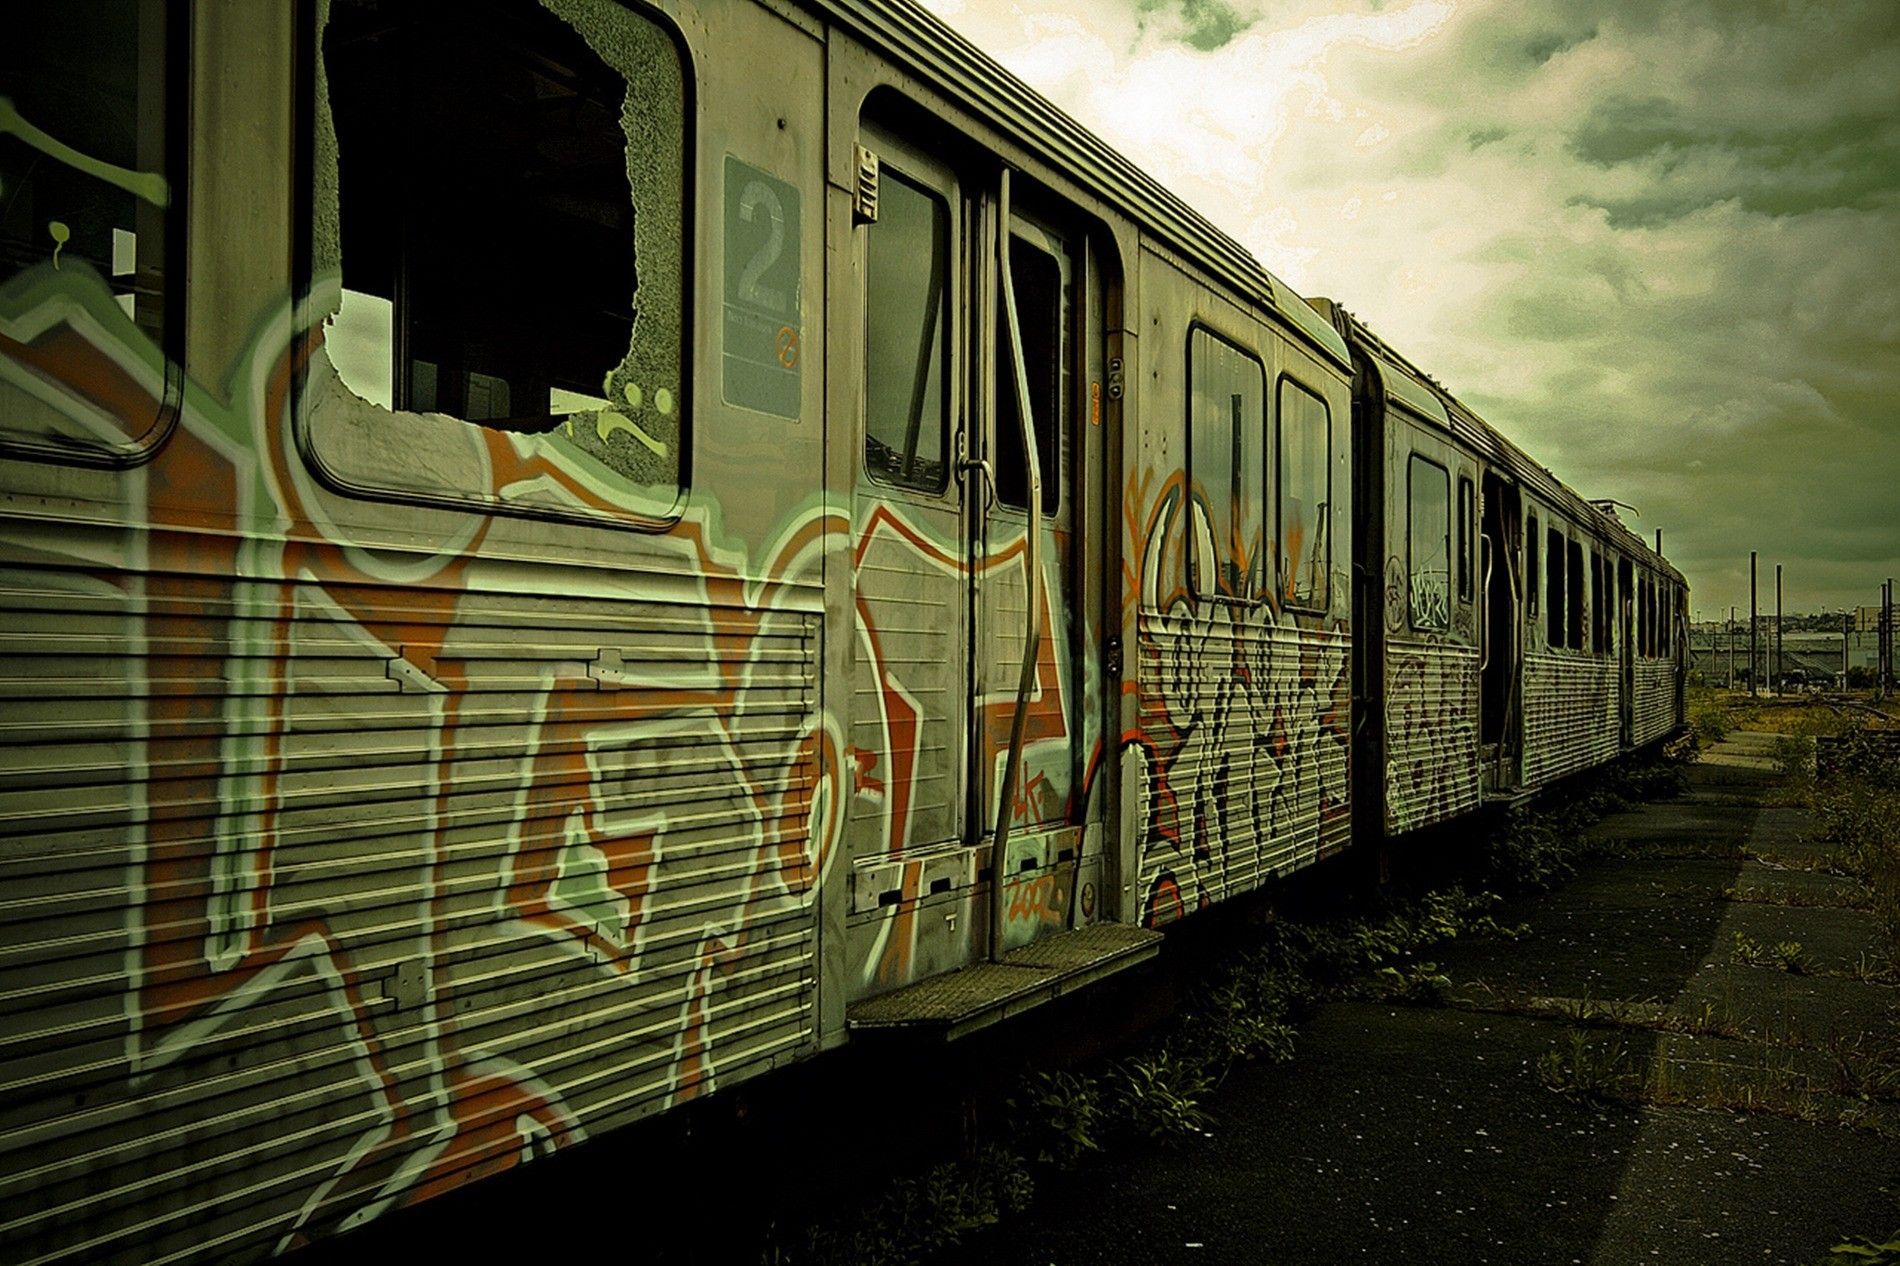 graffiti trains HD Wallpaper